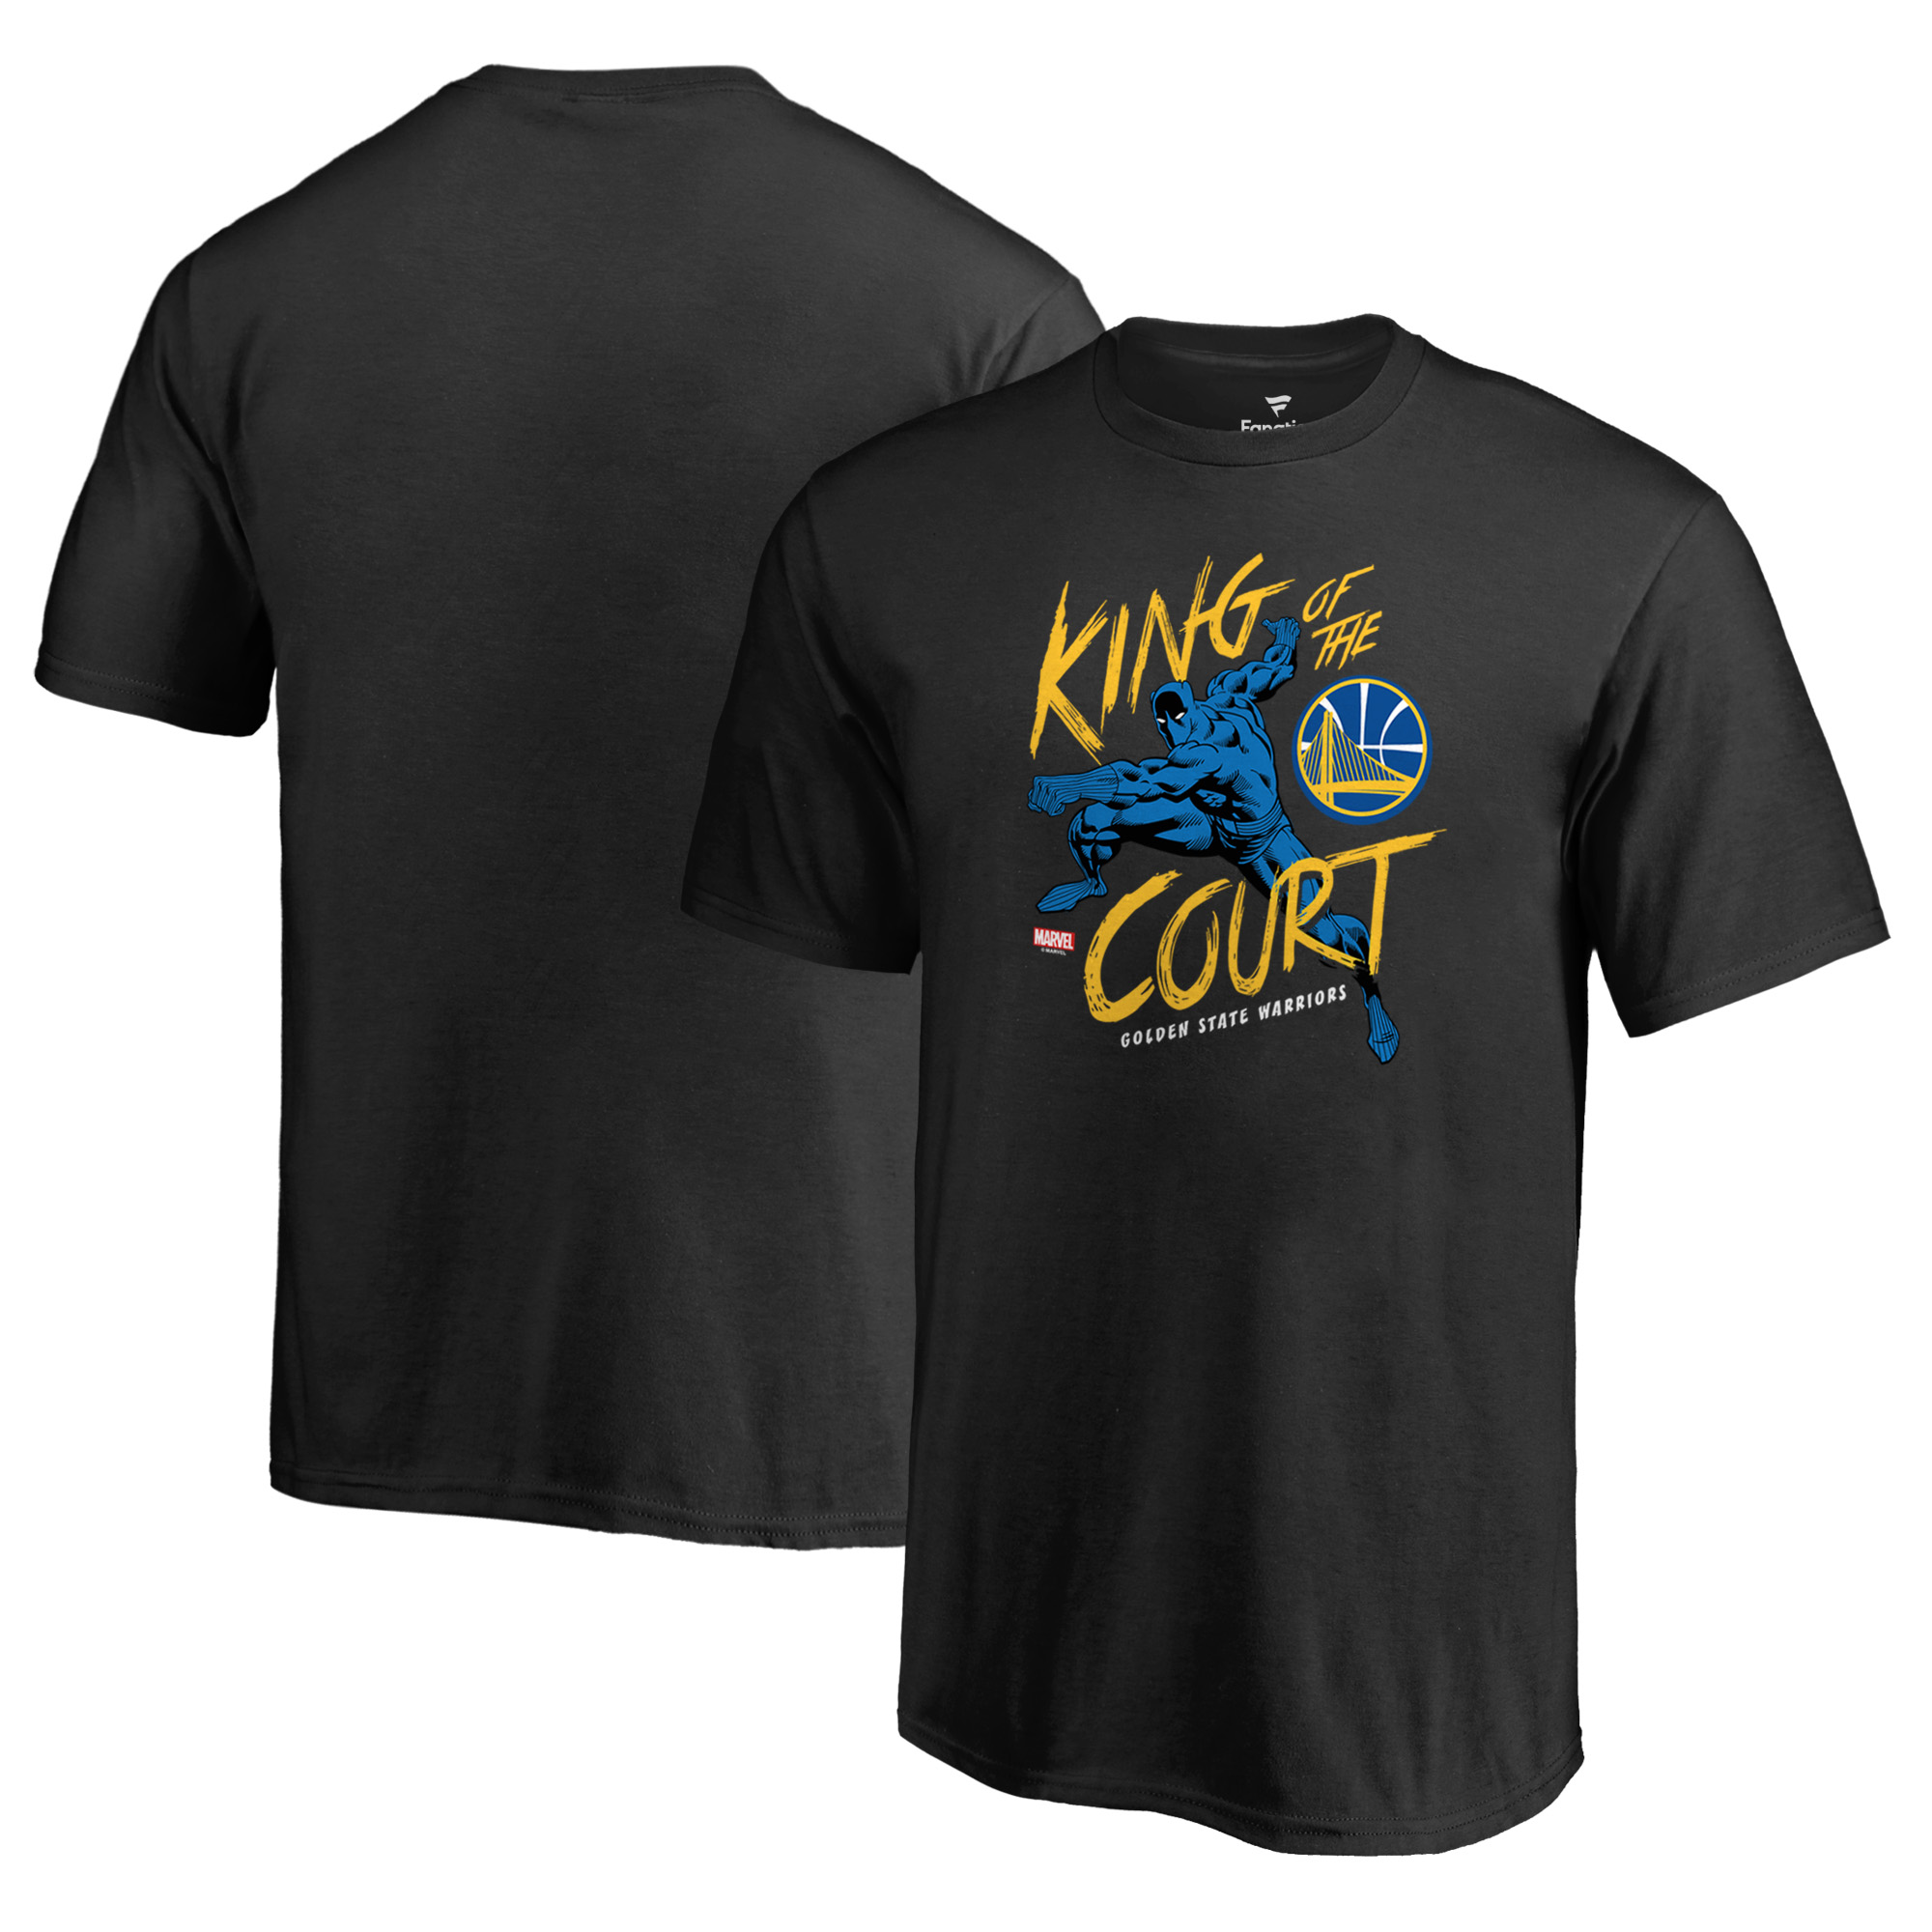 Golden State Warriors Fanatics Branded Youth Marvel Black Panther King of the Court T-Shirt - Black